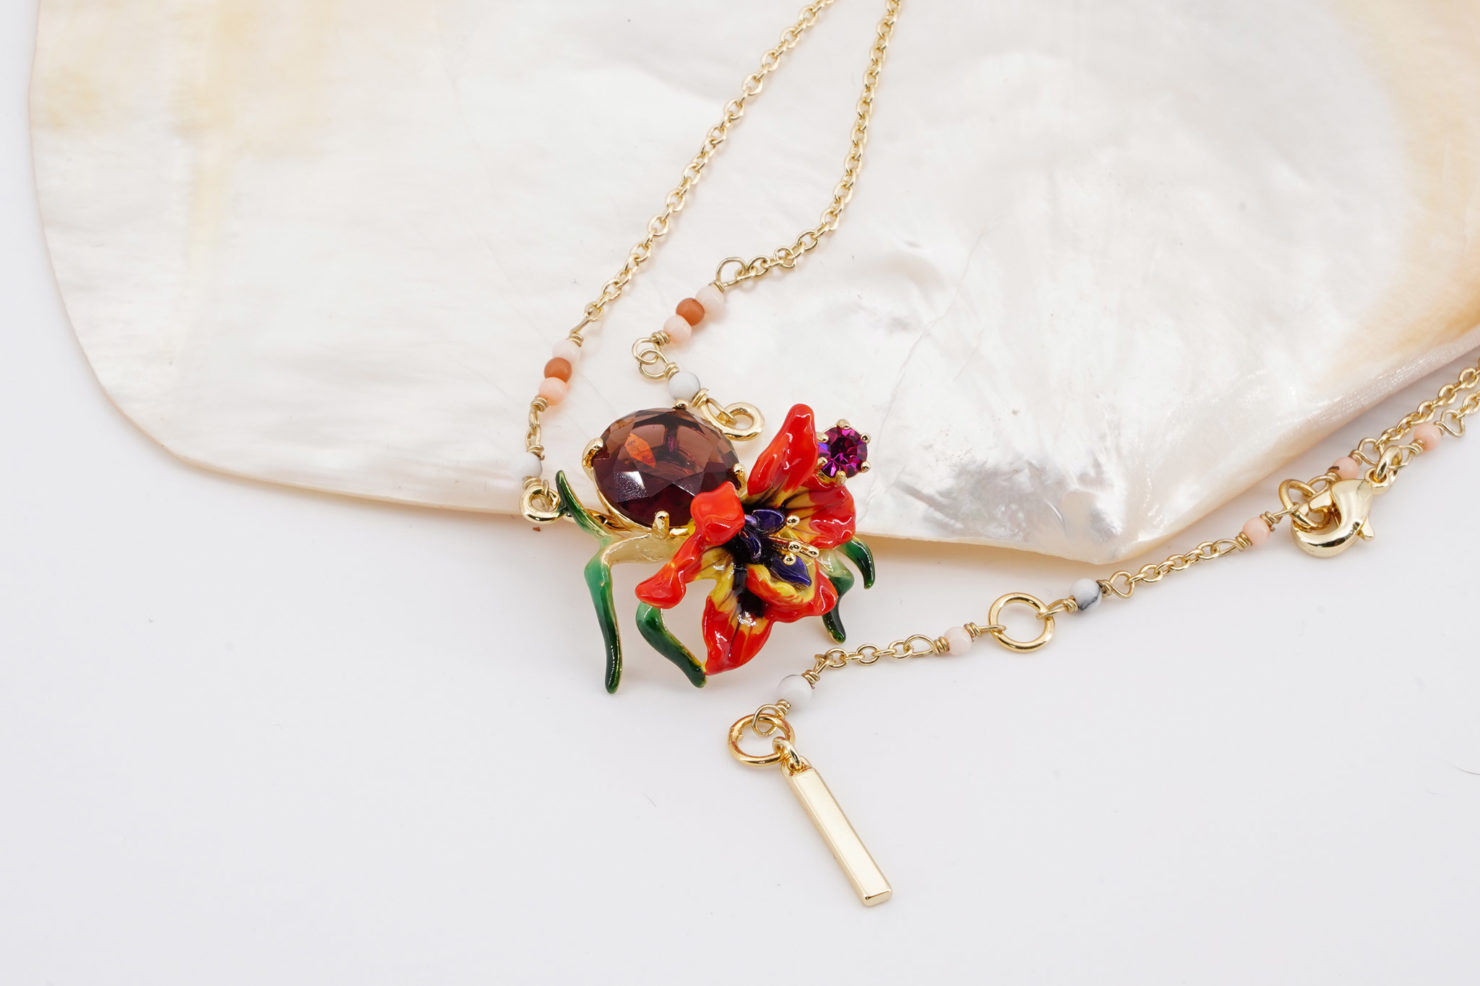 ORCHID NECKLACE FLORE MYSTERIEUSE COLLECTION LES NEREIDES NECKLACE